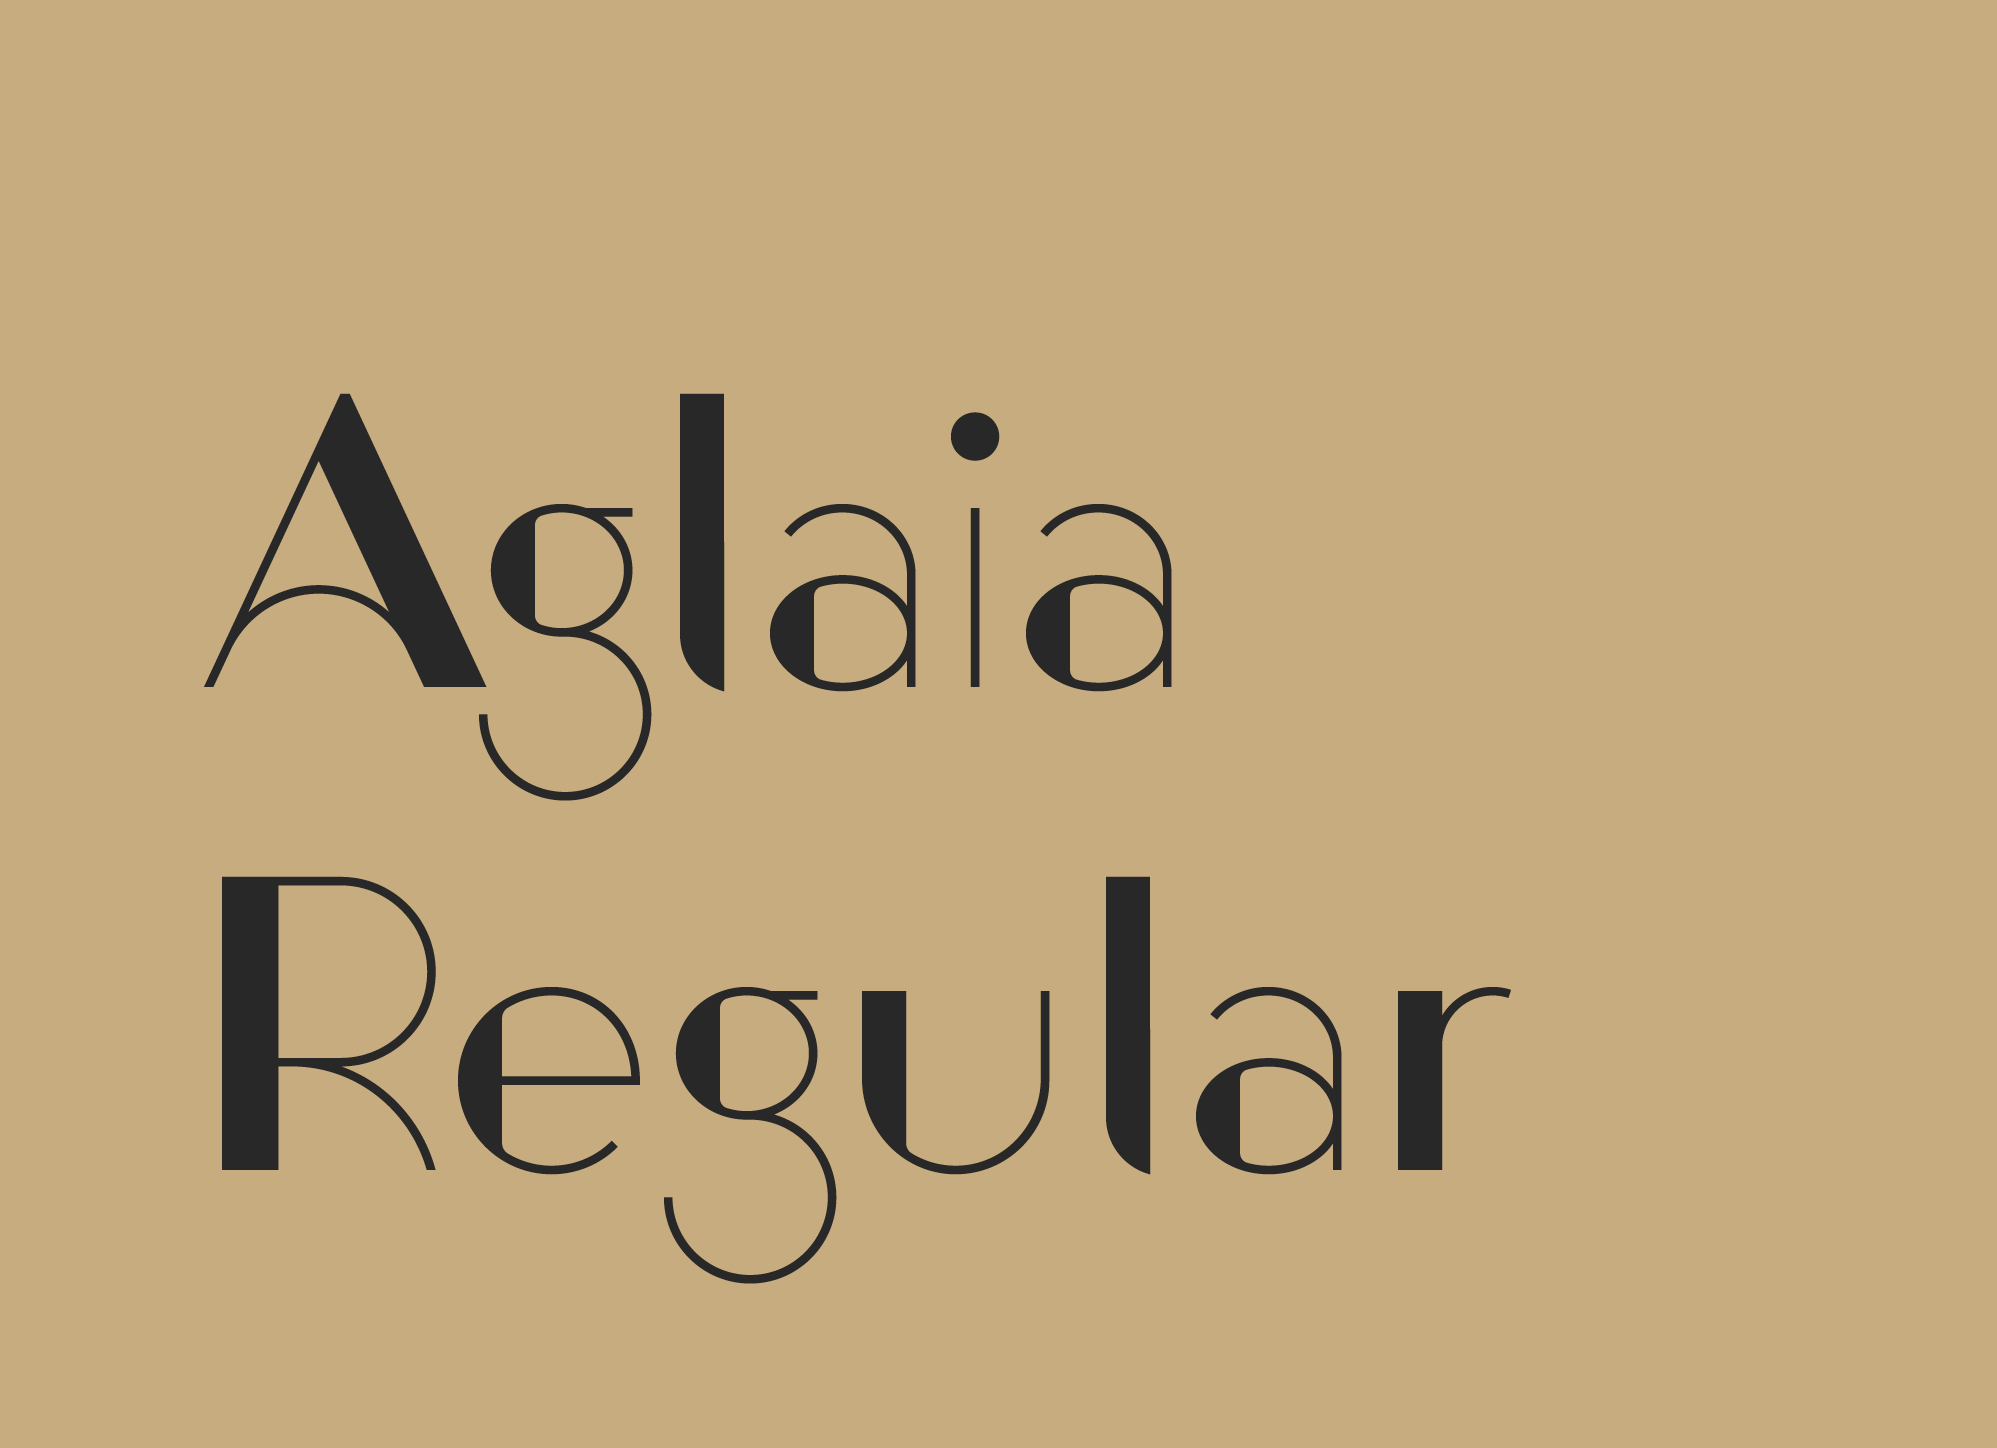 Aglaia-Regular